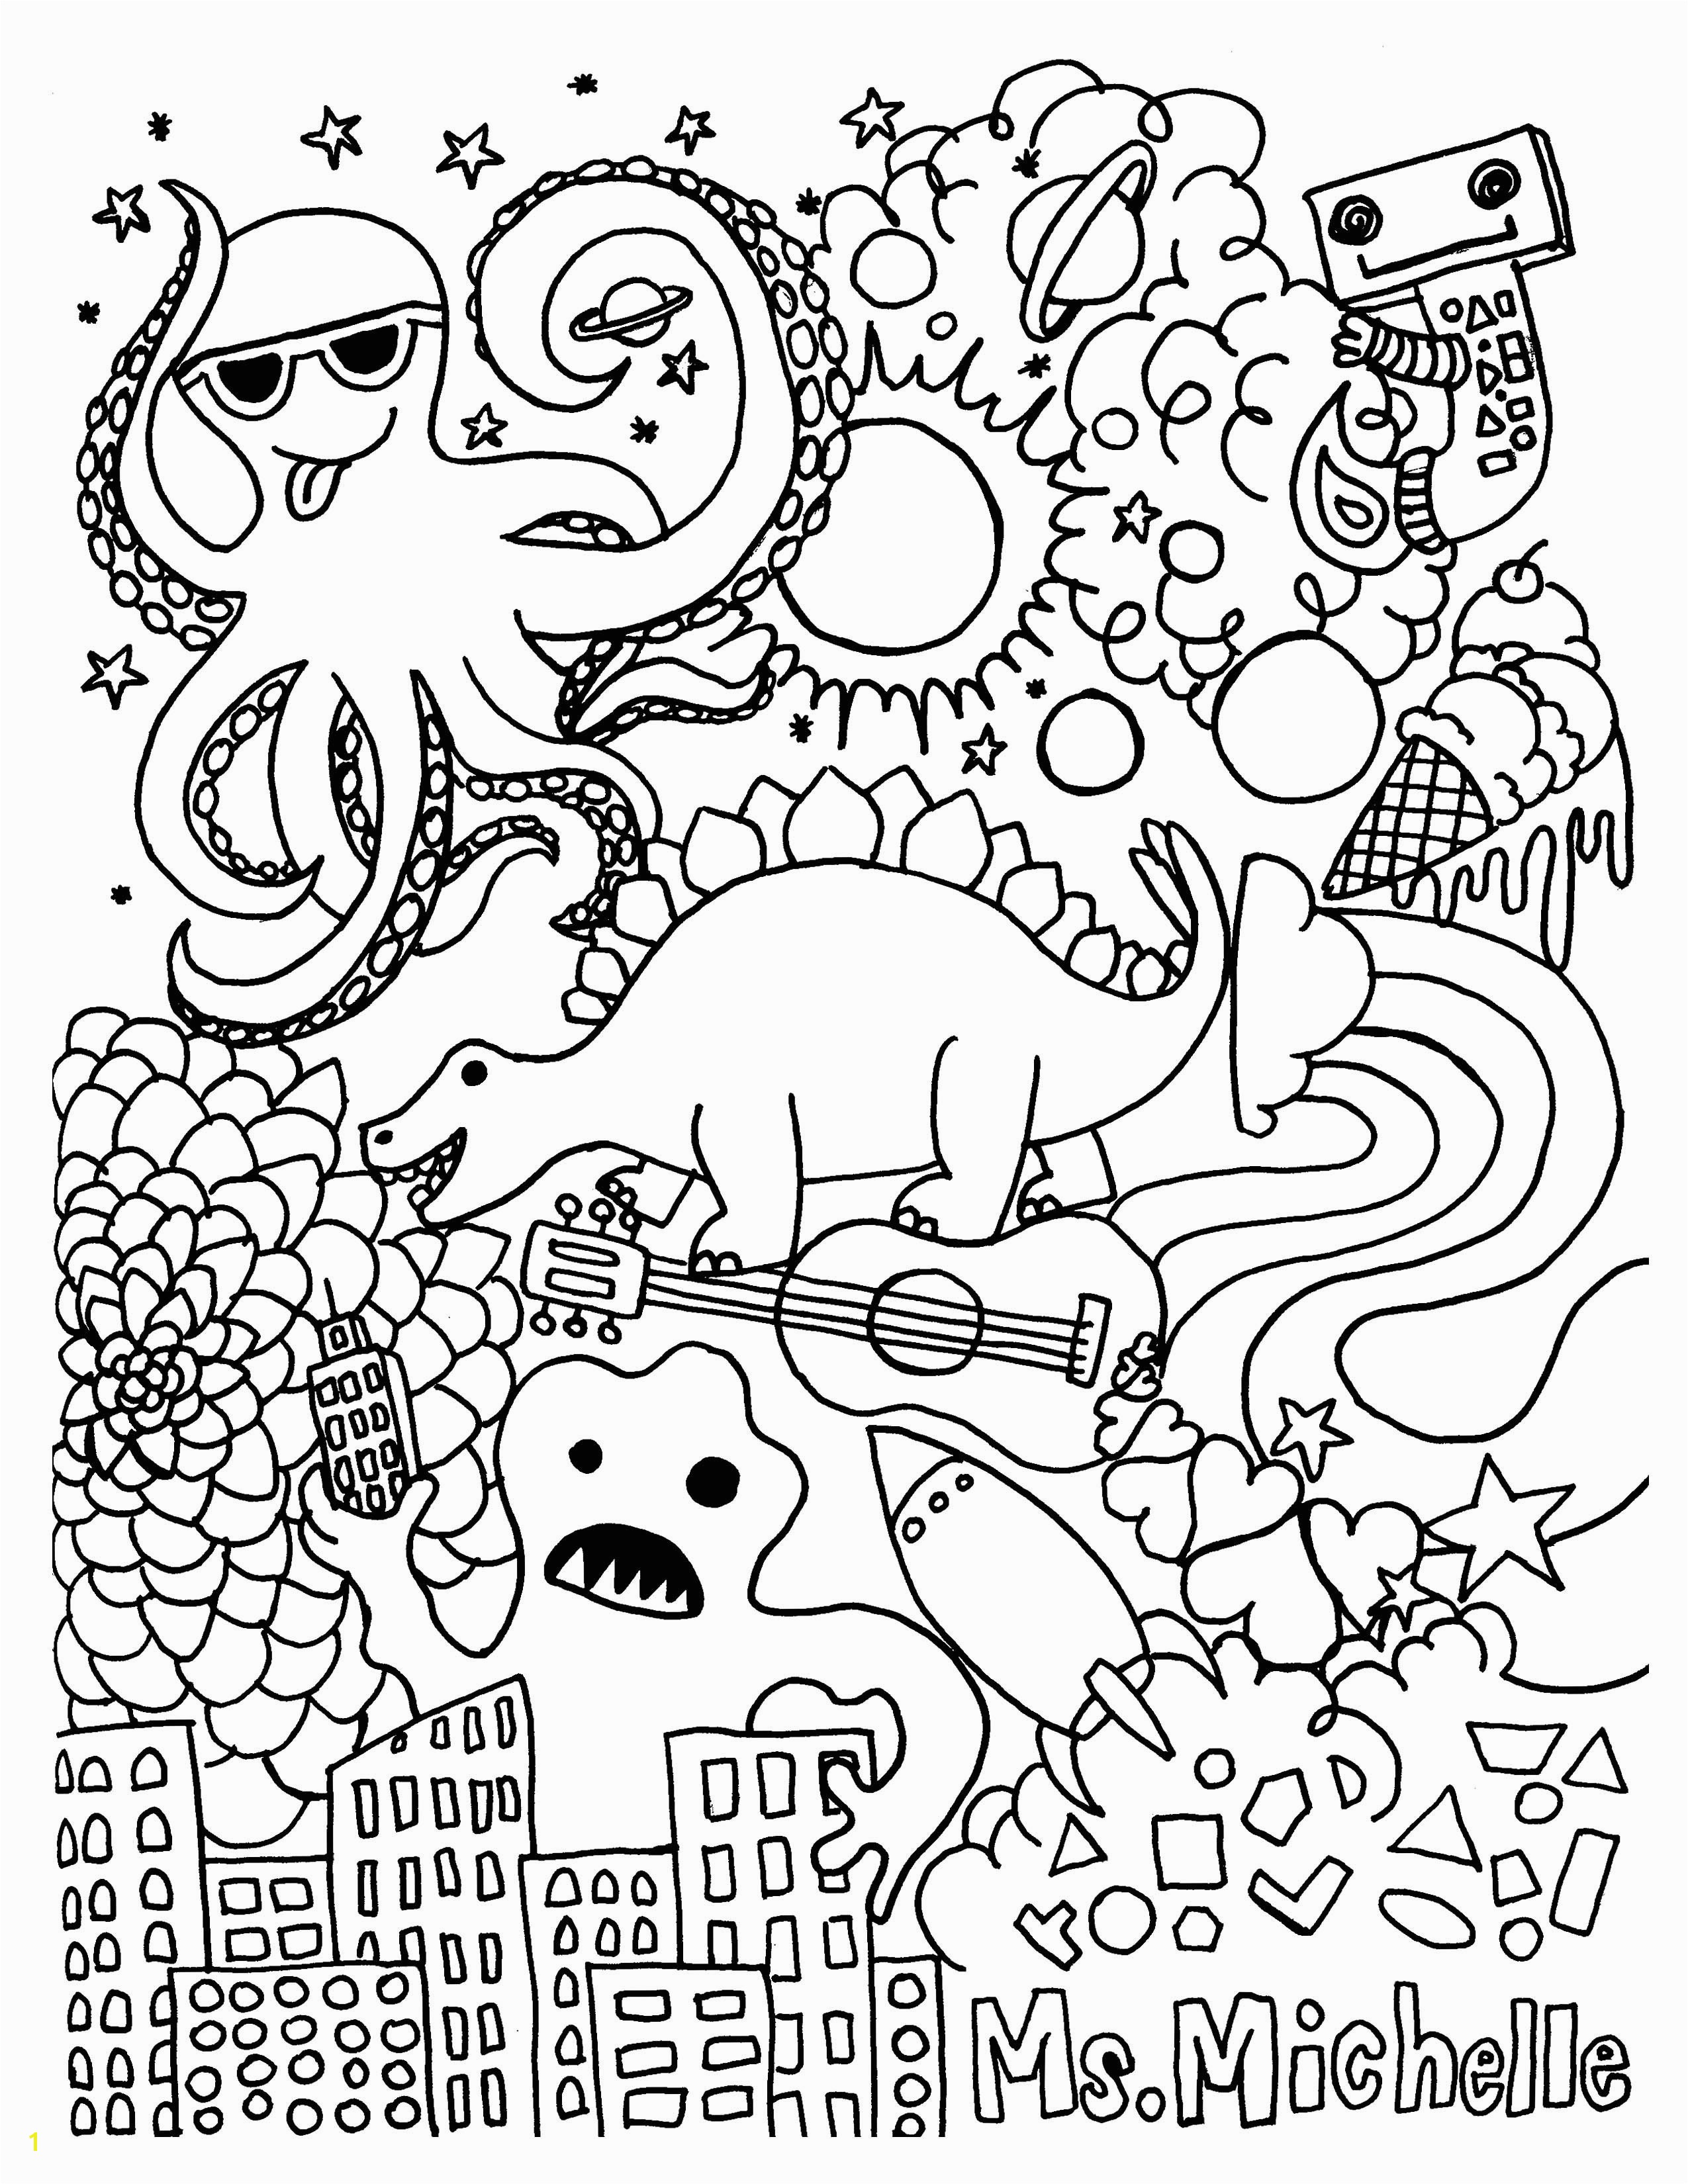 Free Coloring Pages line for Adults Lovely Cool Printable Coloring